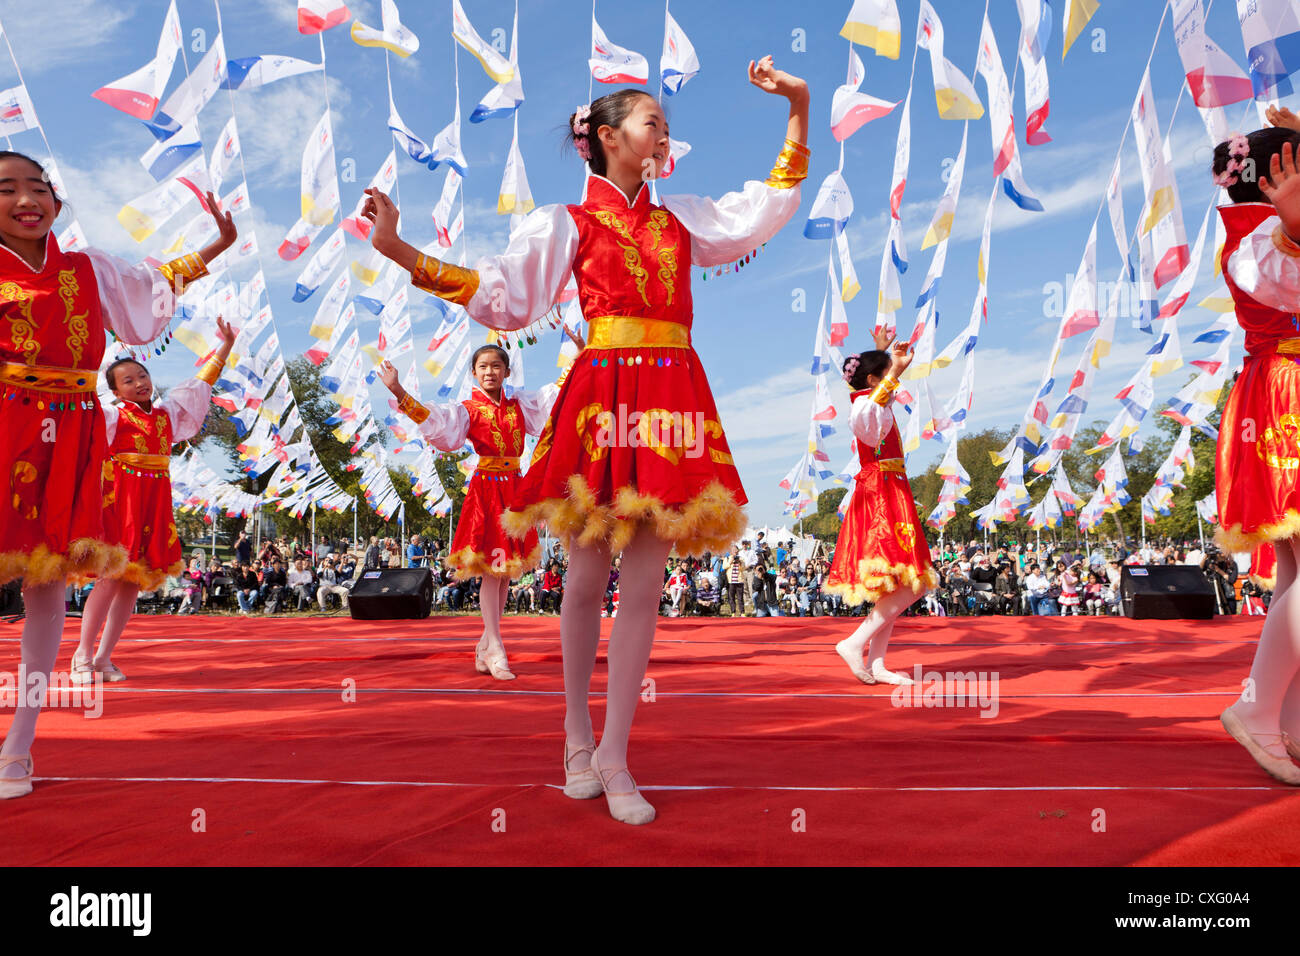 Chinese girls dancing on stage at a festival - Stock Image